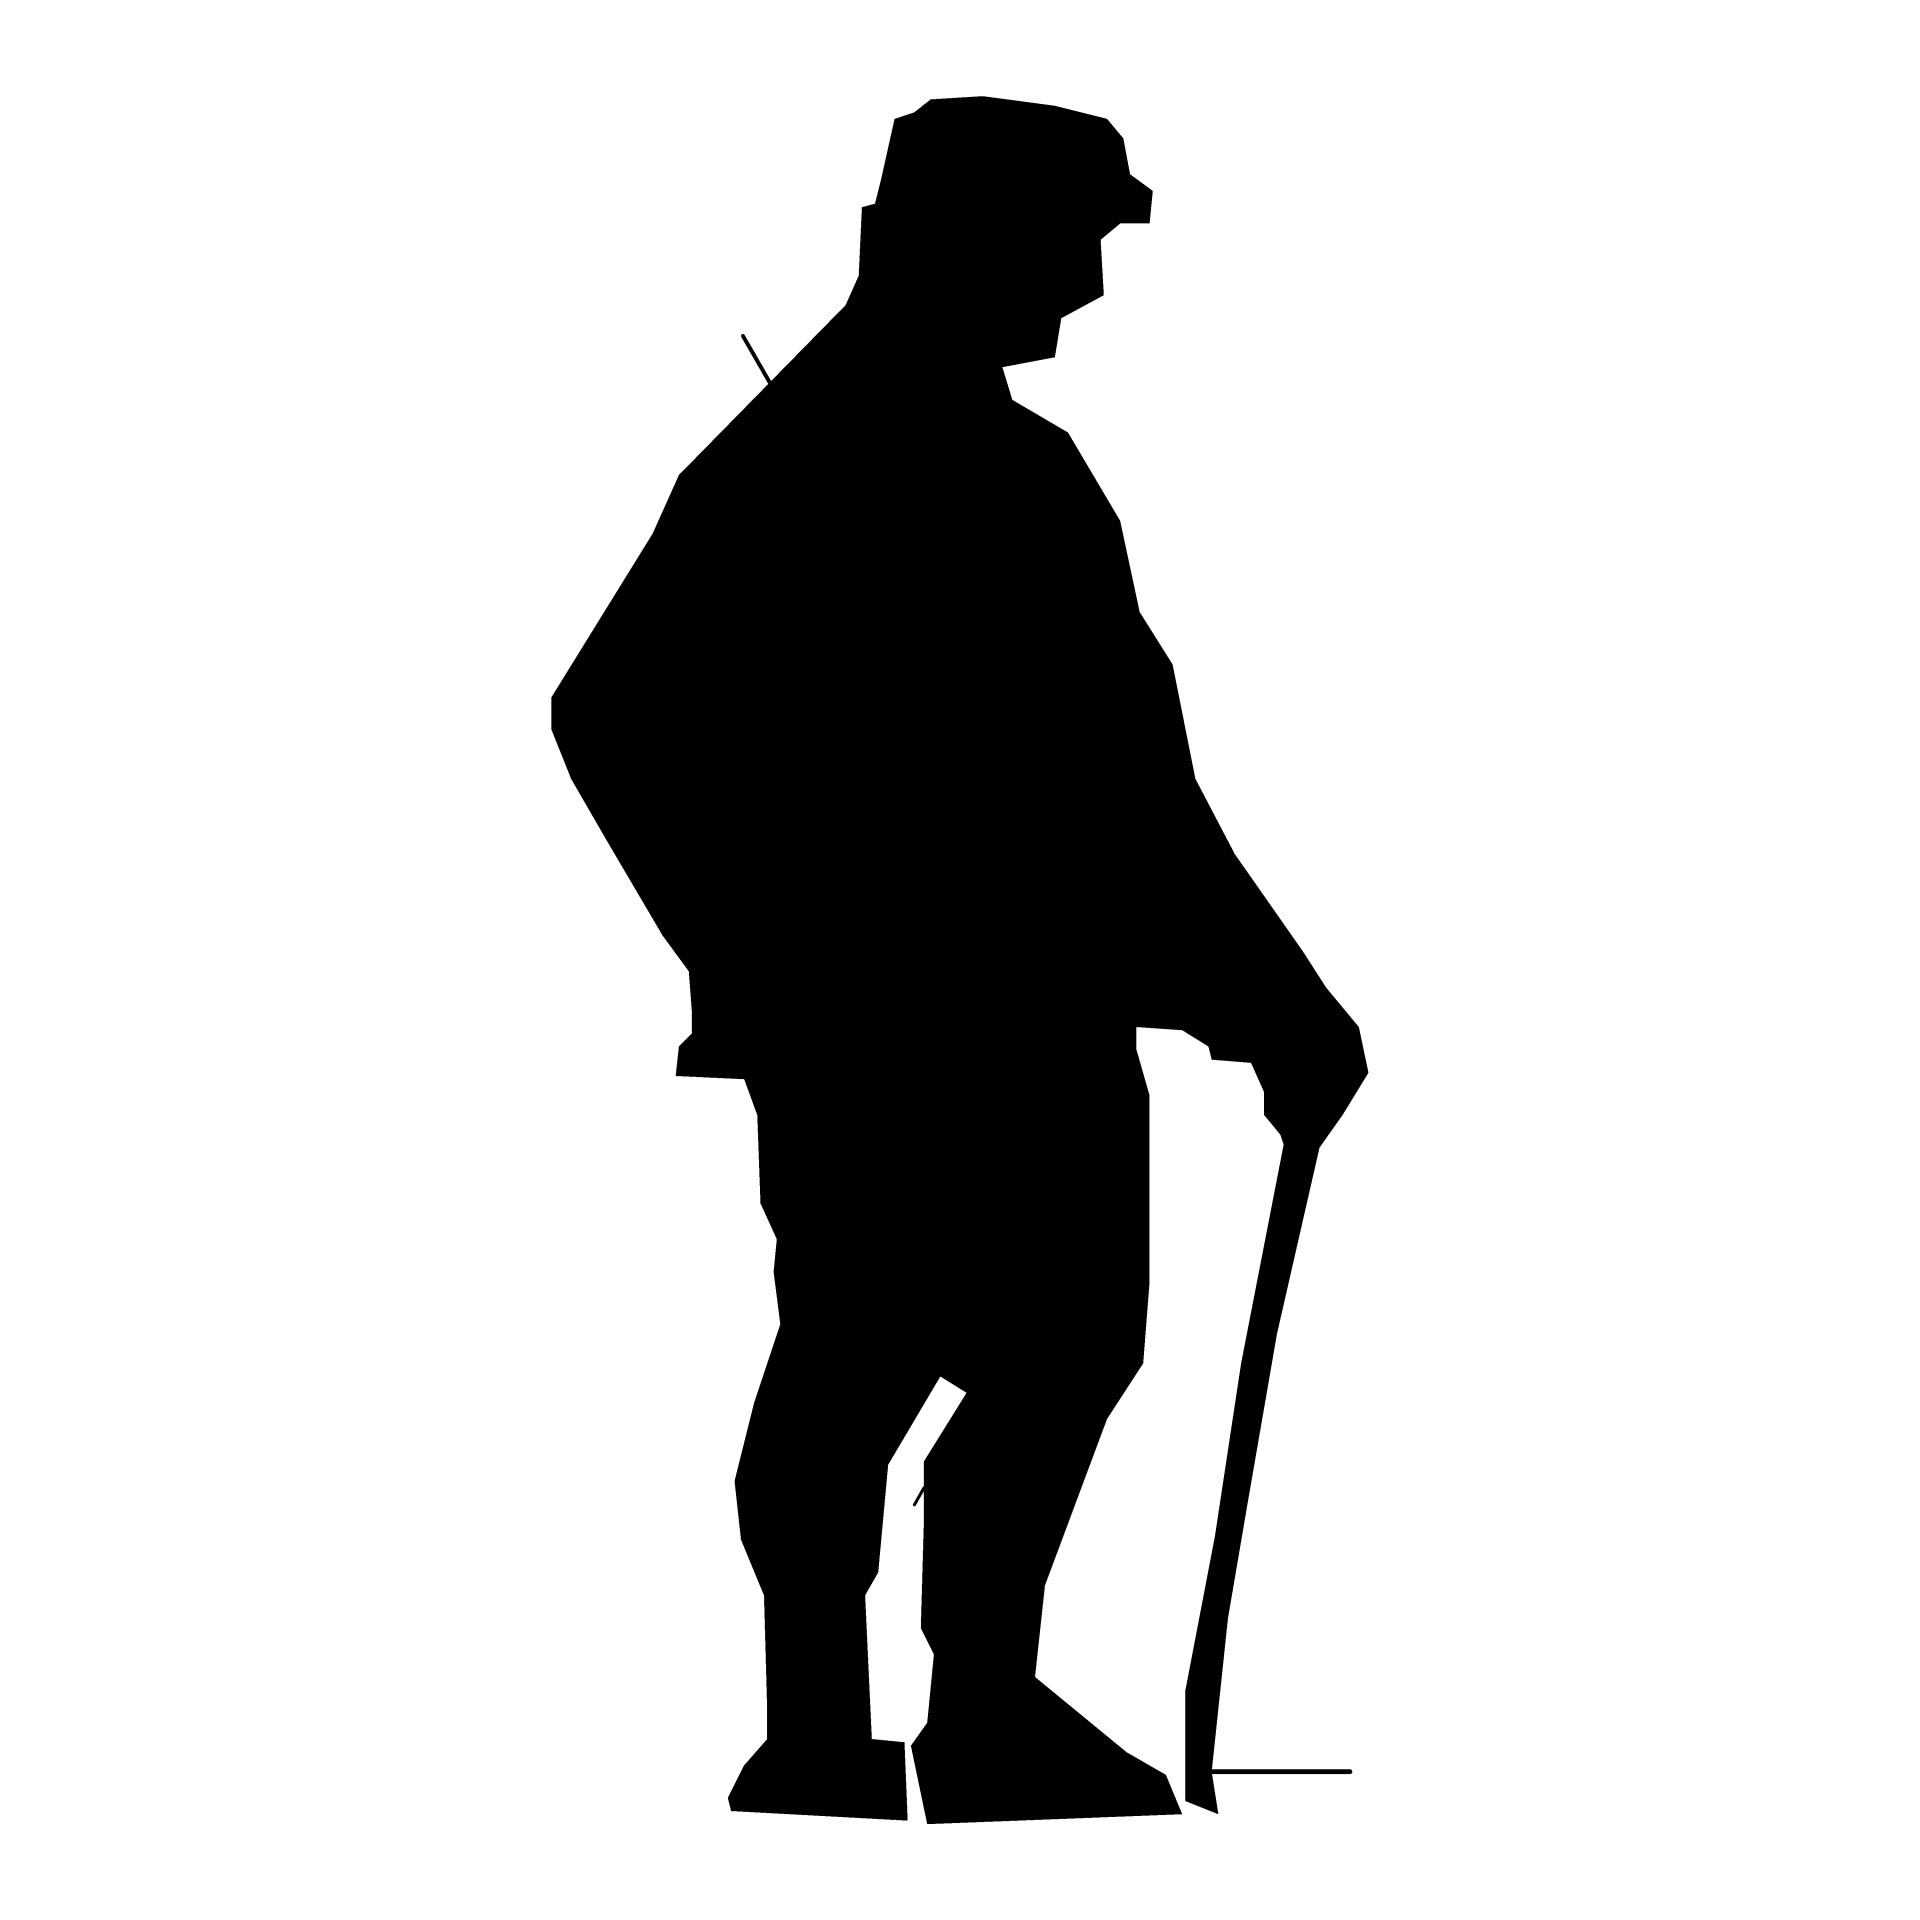 1920x1920 Silhouette Man Hiking Free Stock Photo